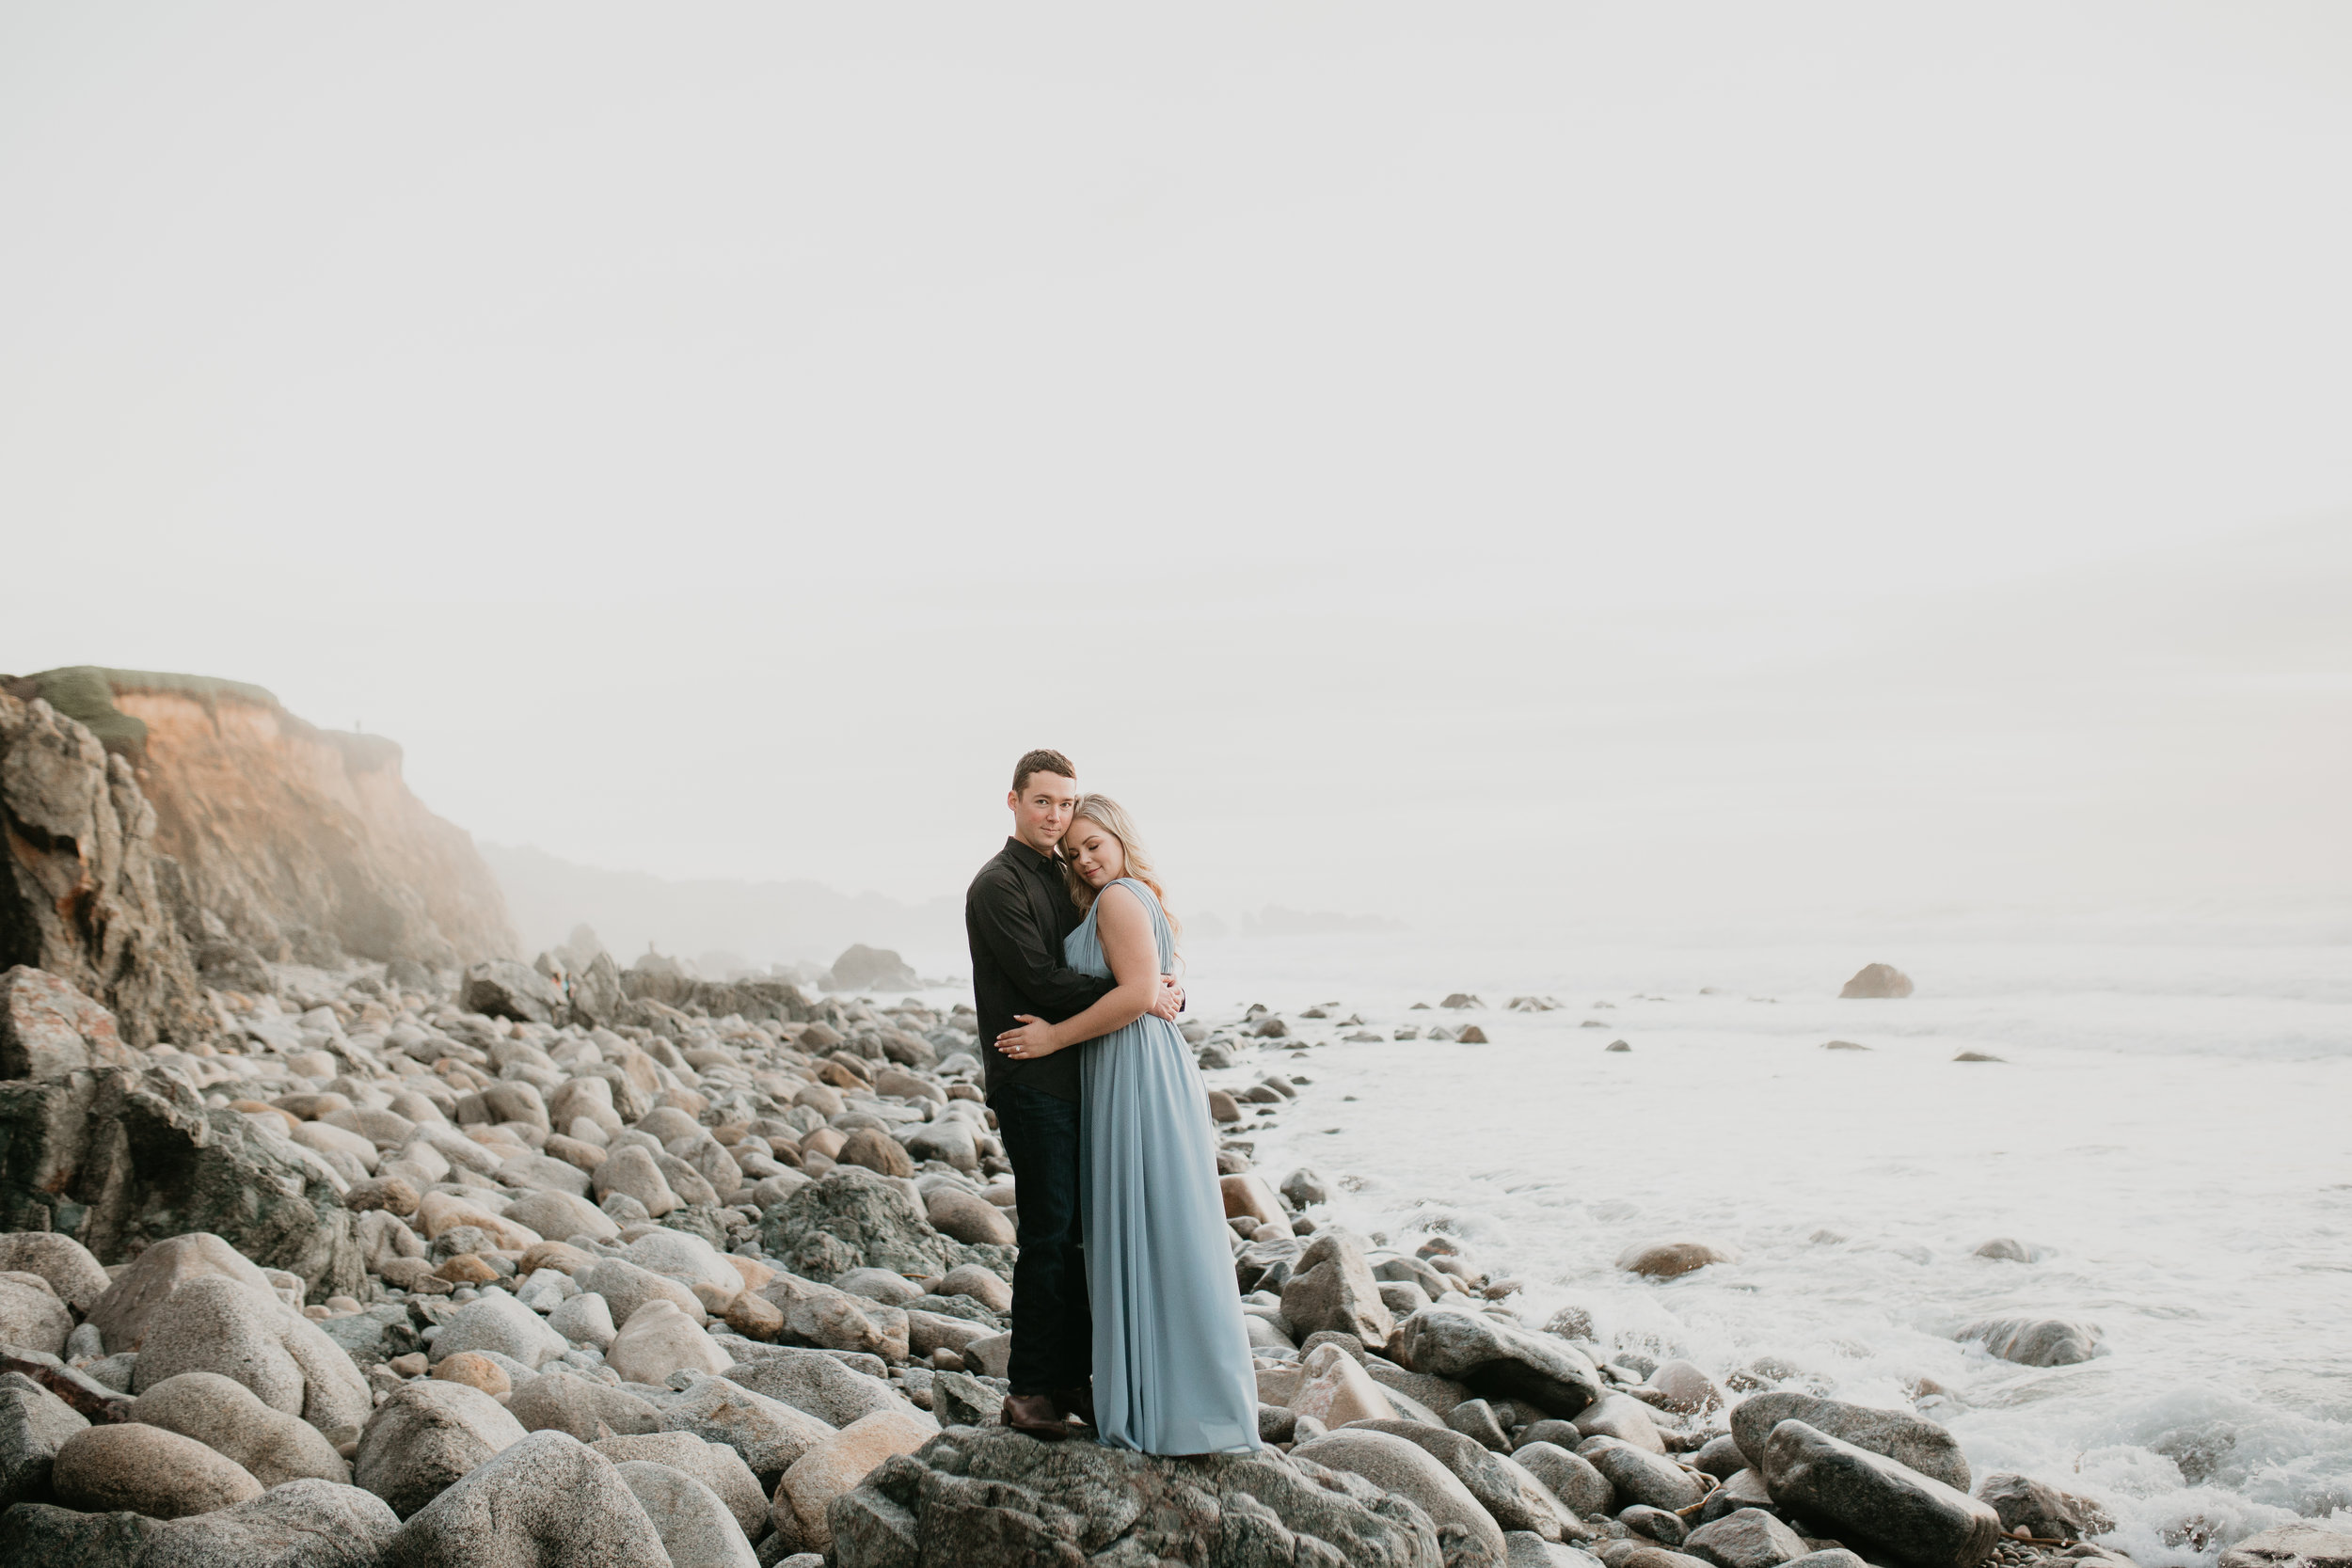 Nicole-Daacke-Photography-big-sur-garrapatta-state-park-adventurous-engagement-session-bixy-bridge-elopement-big-sur-wedding-photographer-monterey-elopement-photographer-california-golden-sunset-coast-photos-47.jpg